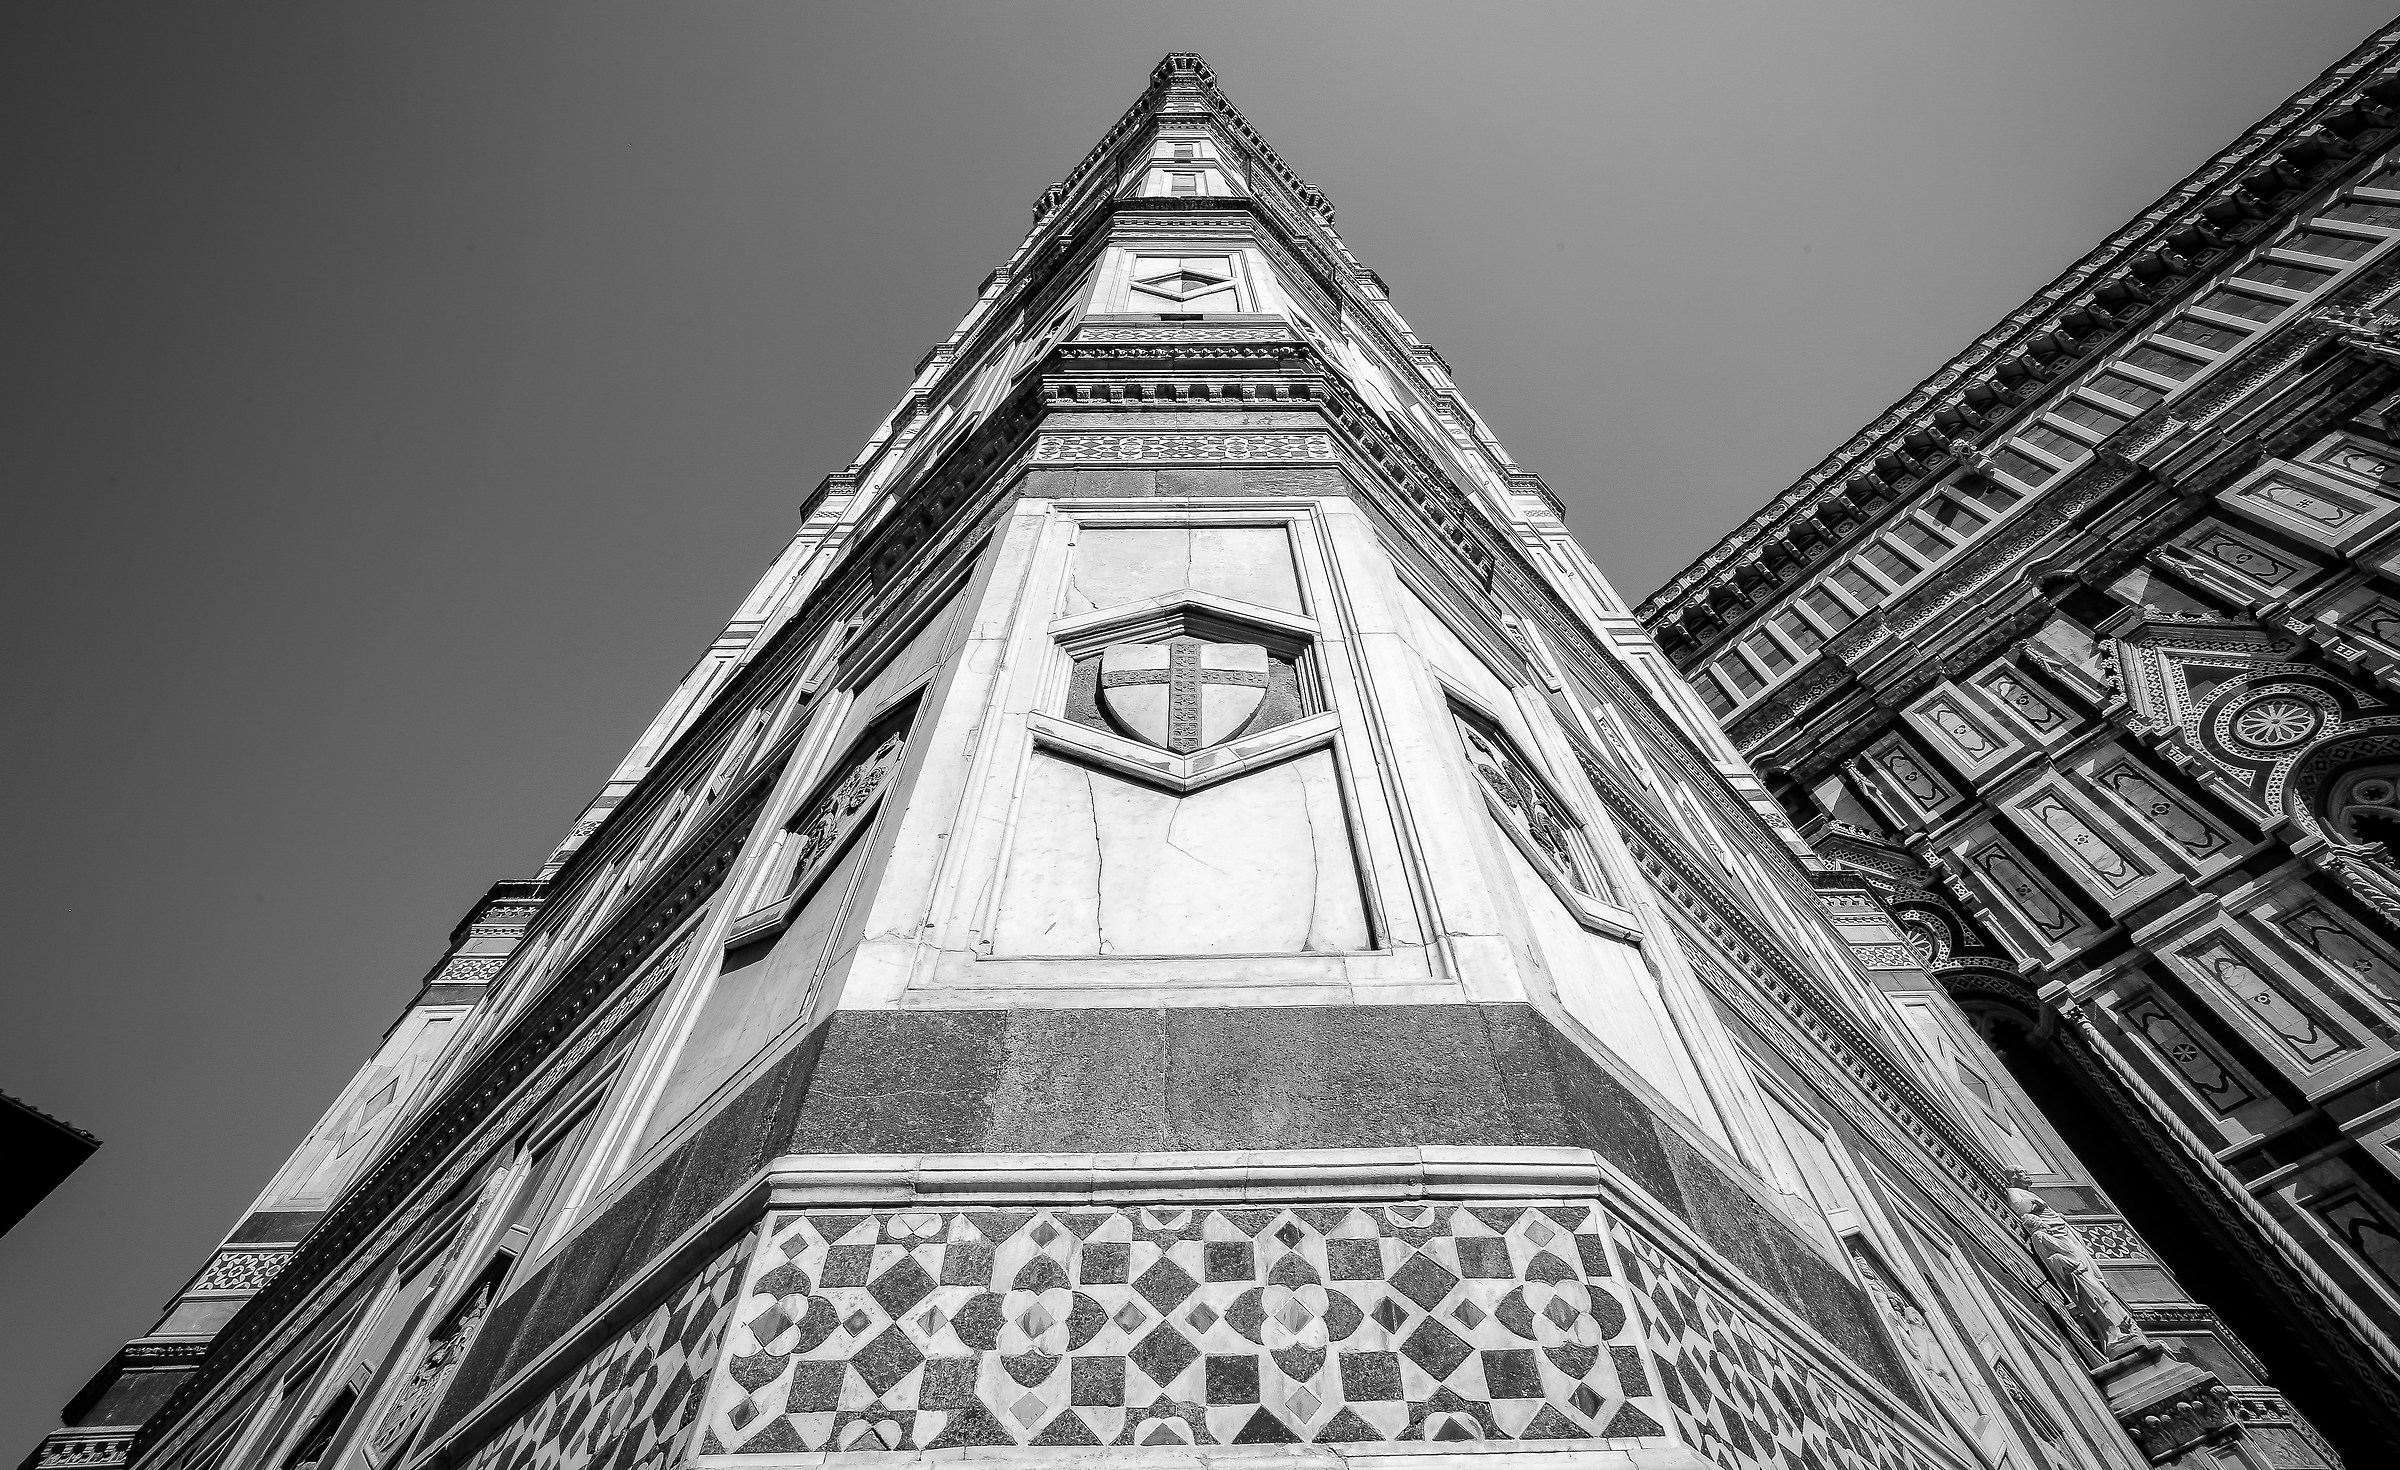 Giotto's Tower...